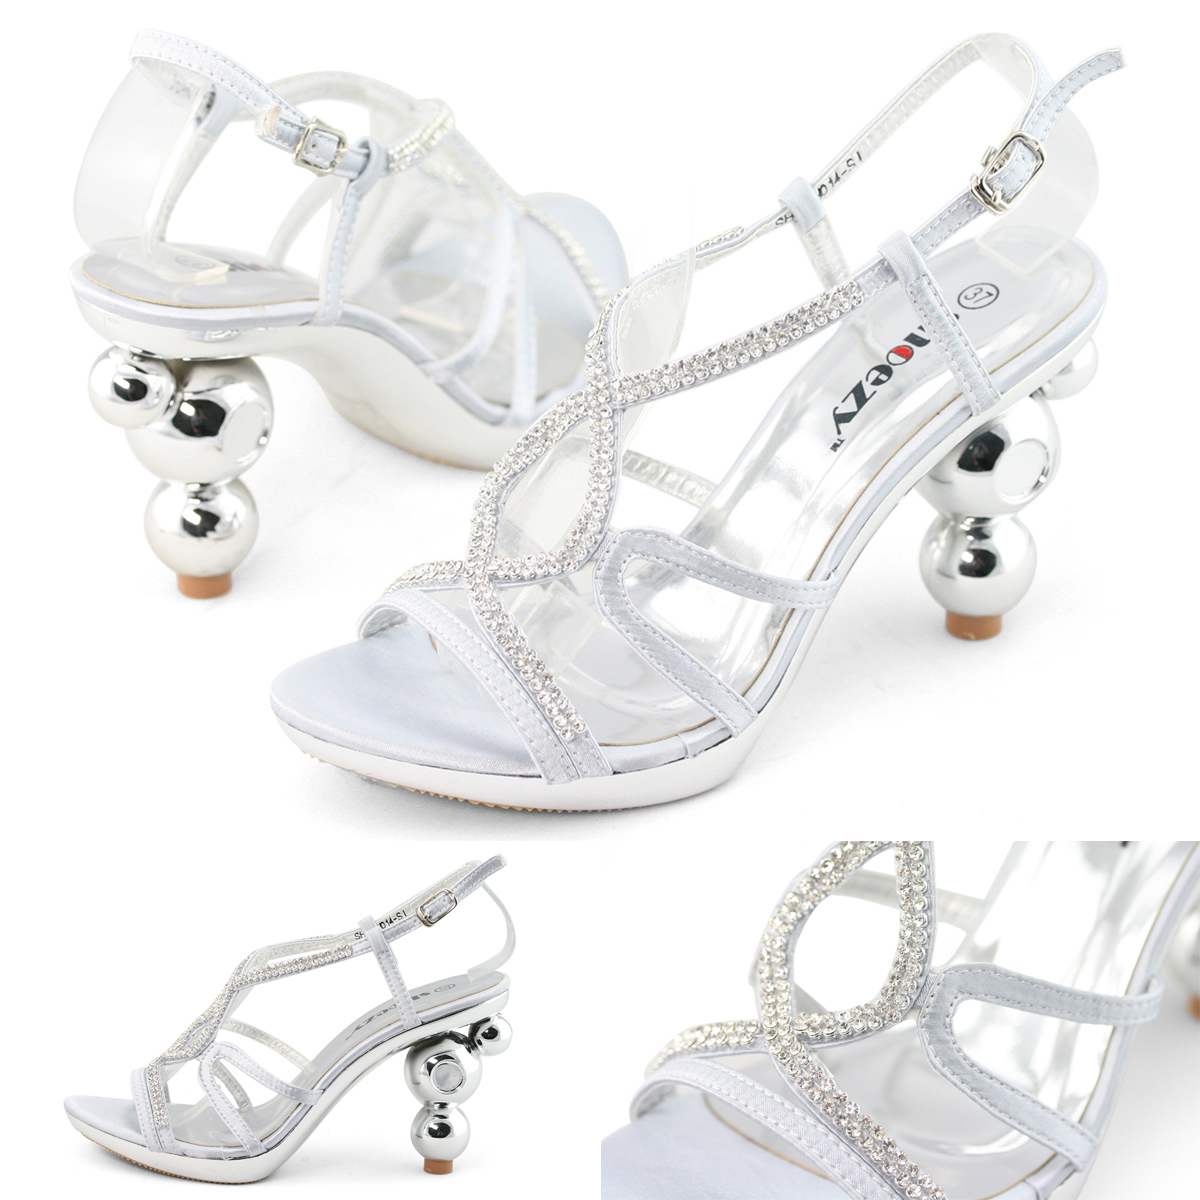 SHOEZY-Womens-Strappy-Diamante-Platform-Pumps-Block-Wedges-High-Heels-Shoes